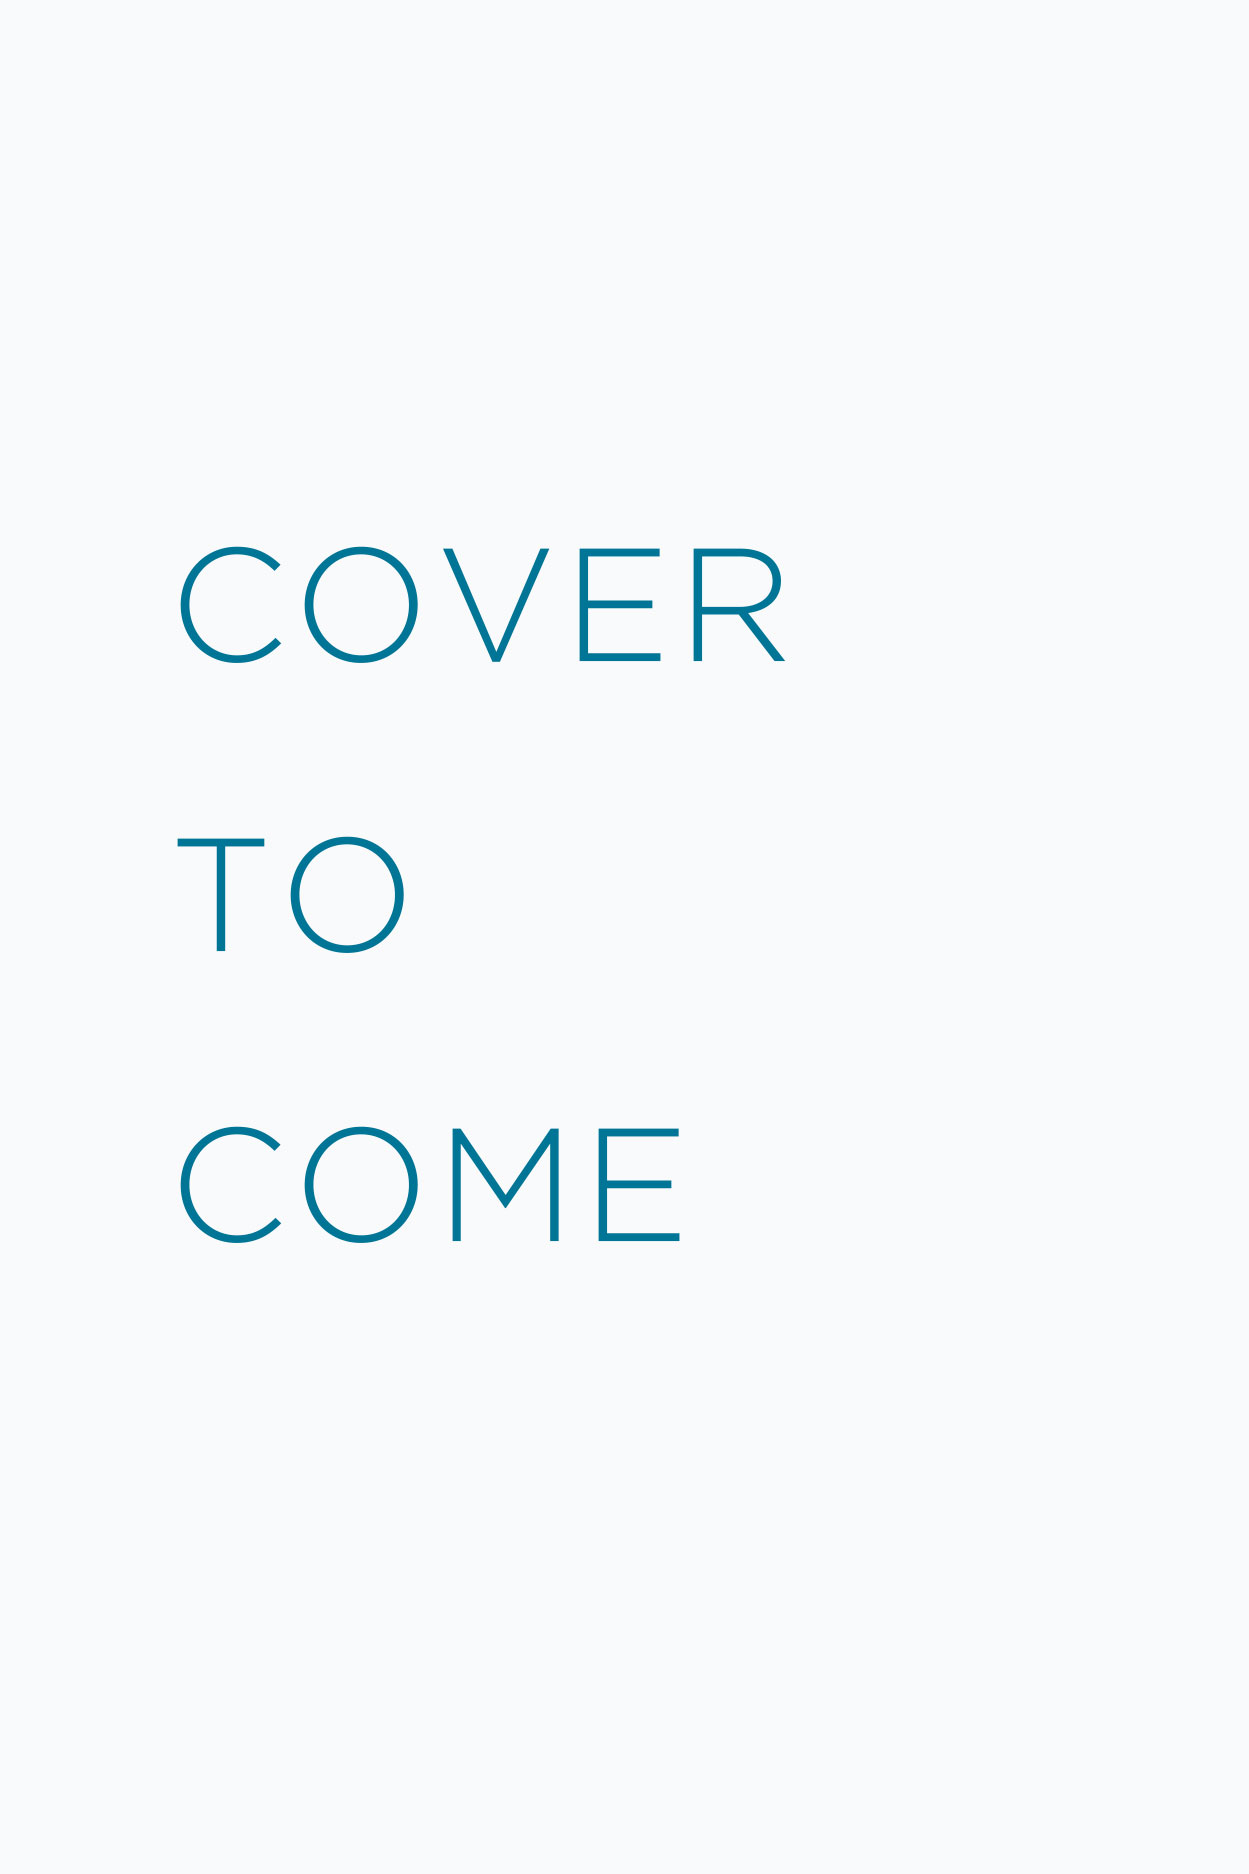 Cover of the first Whole Earth Catalog